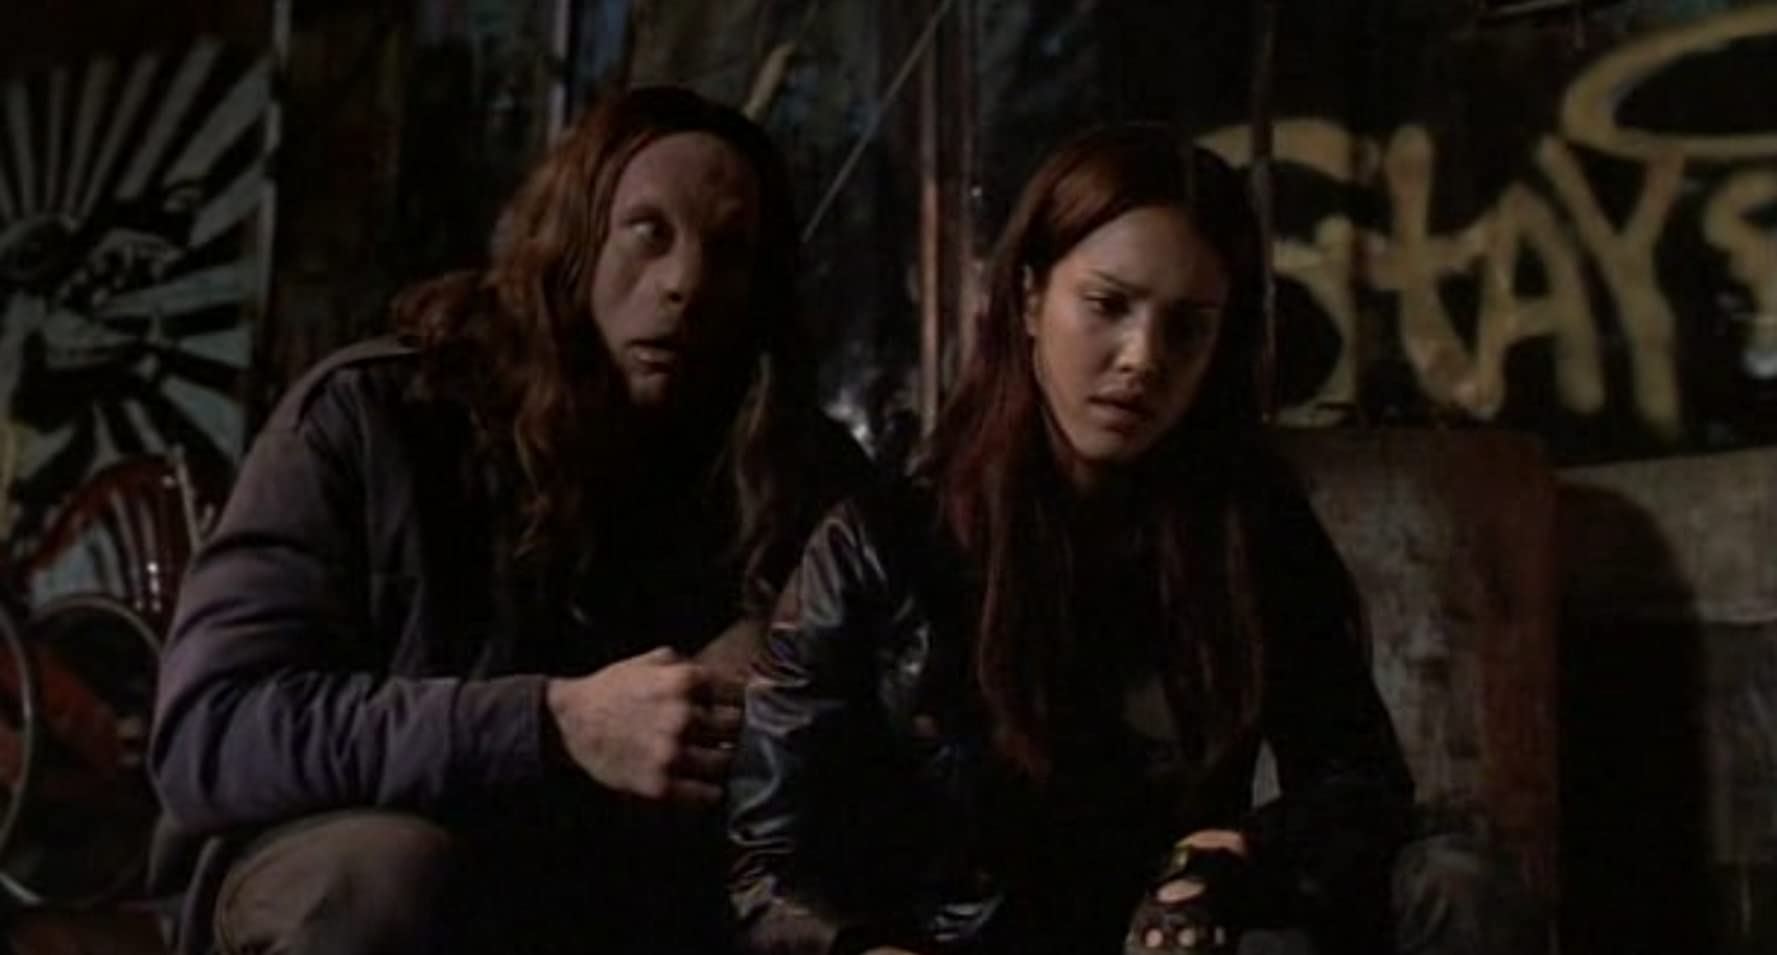 Jessica Alba and Kevin Durand in Dark Angel (2000)